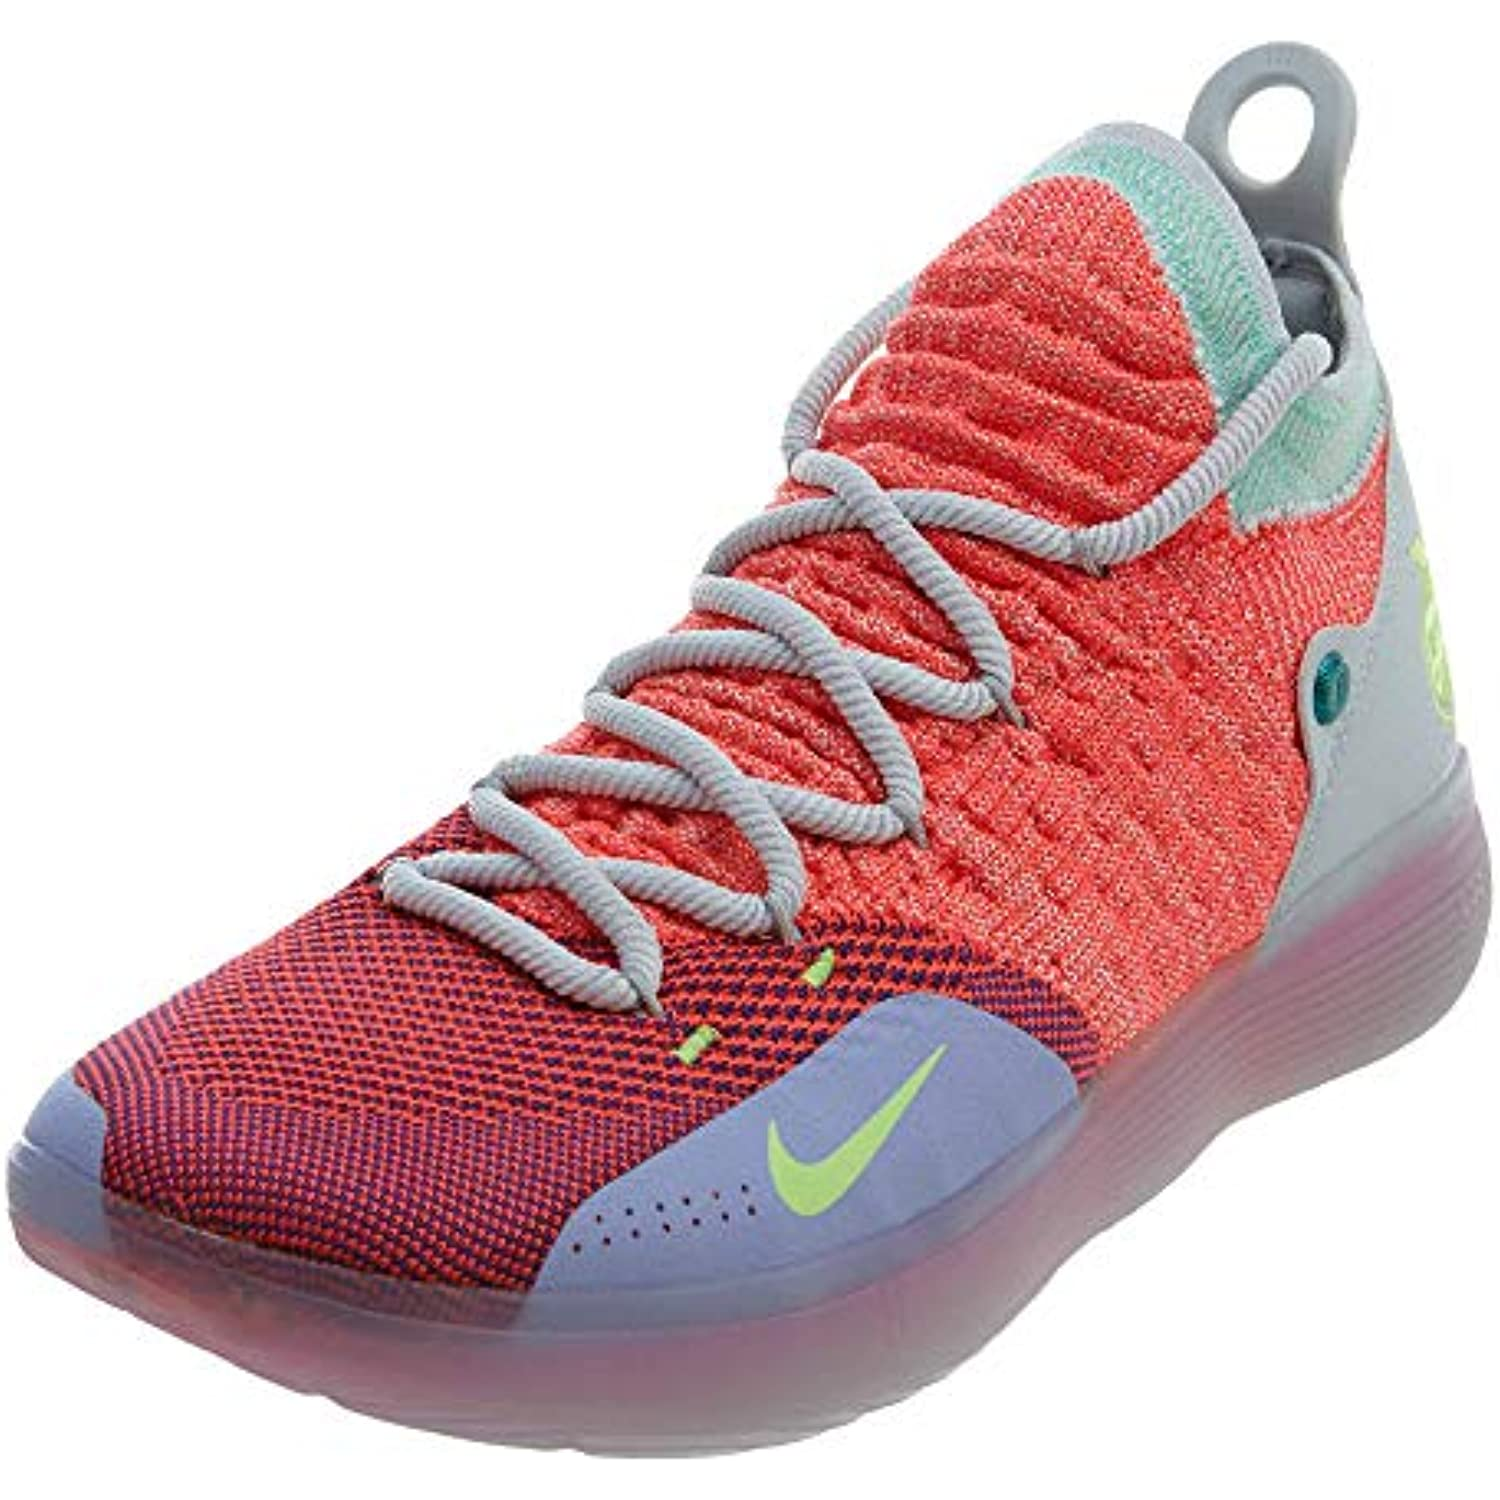 a05332b6df57b NIKE Zoom Kd11, Chaussures Chaussures Chaussures de Fitness Homme ...